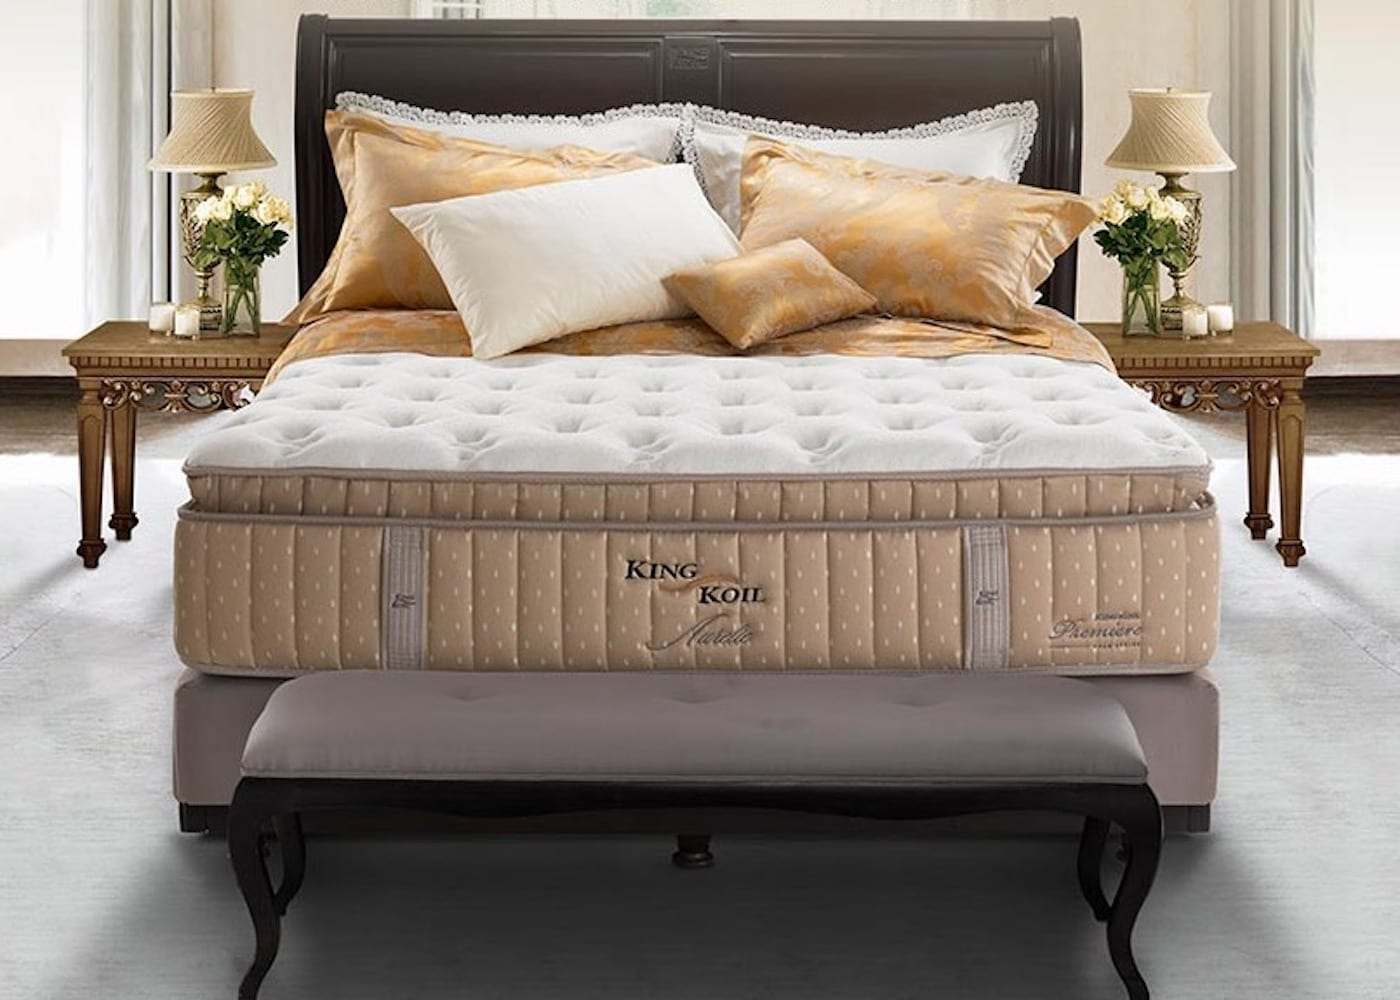 Mattress from King Koil Indonesia